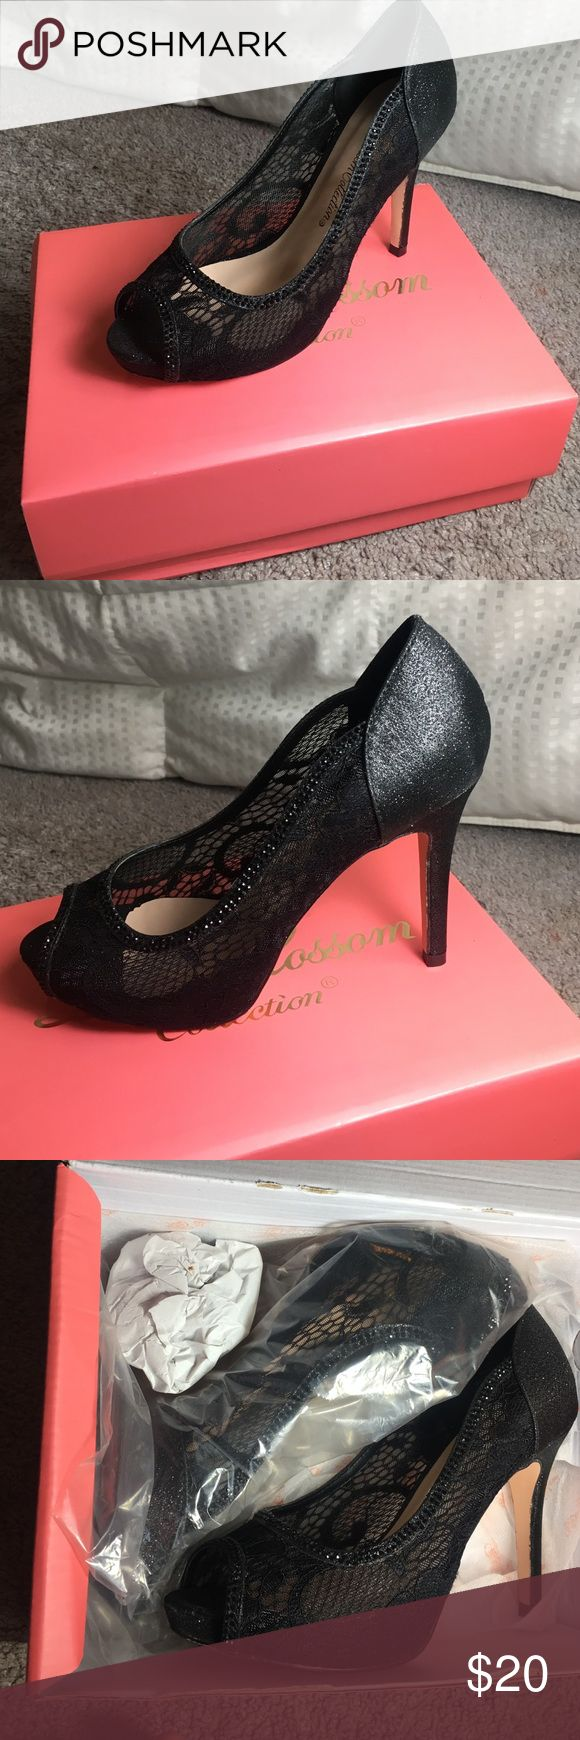 Lace heels Black lace heels with a glittery heel brand new in the box have not worn at all Shoes Heels